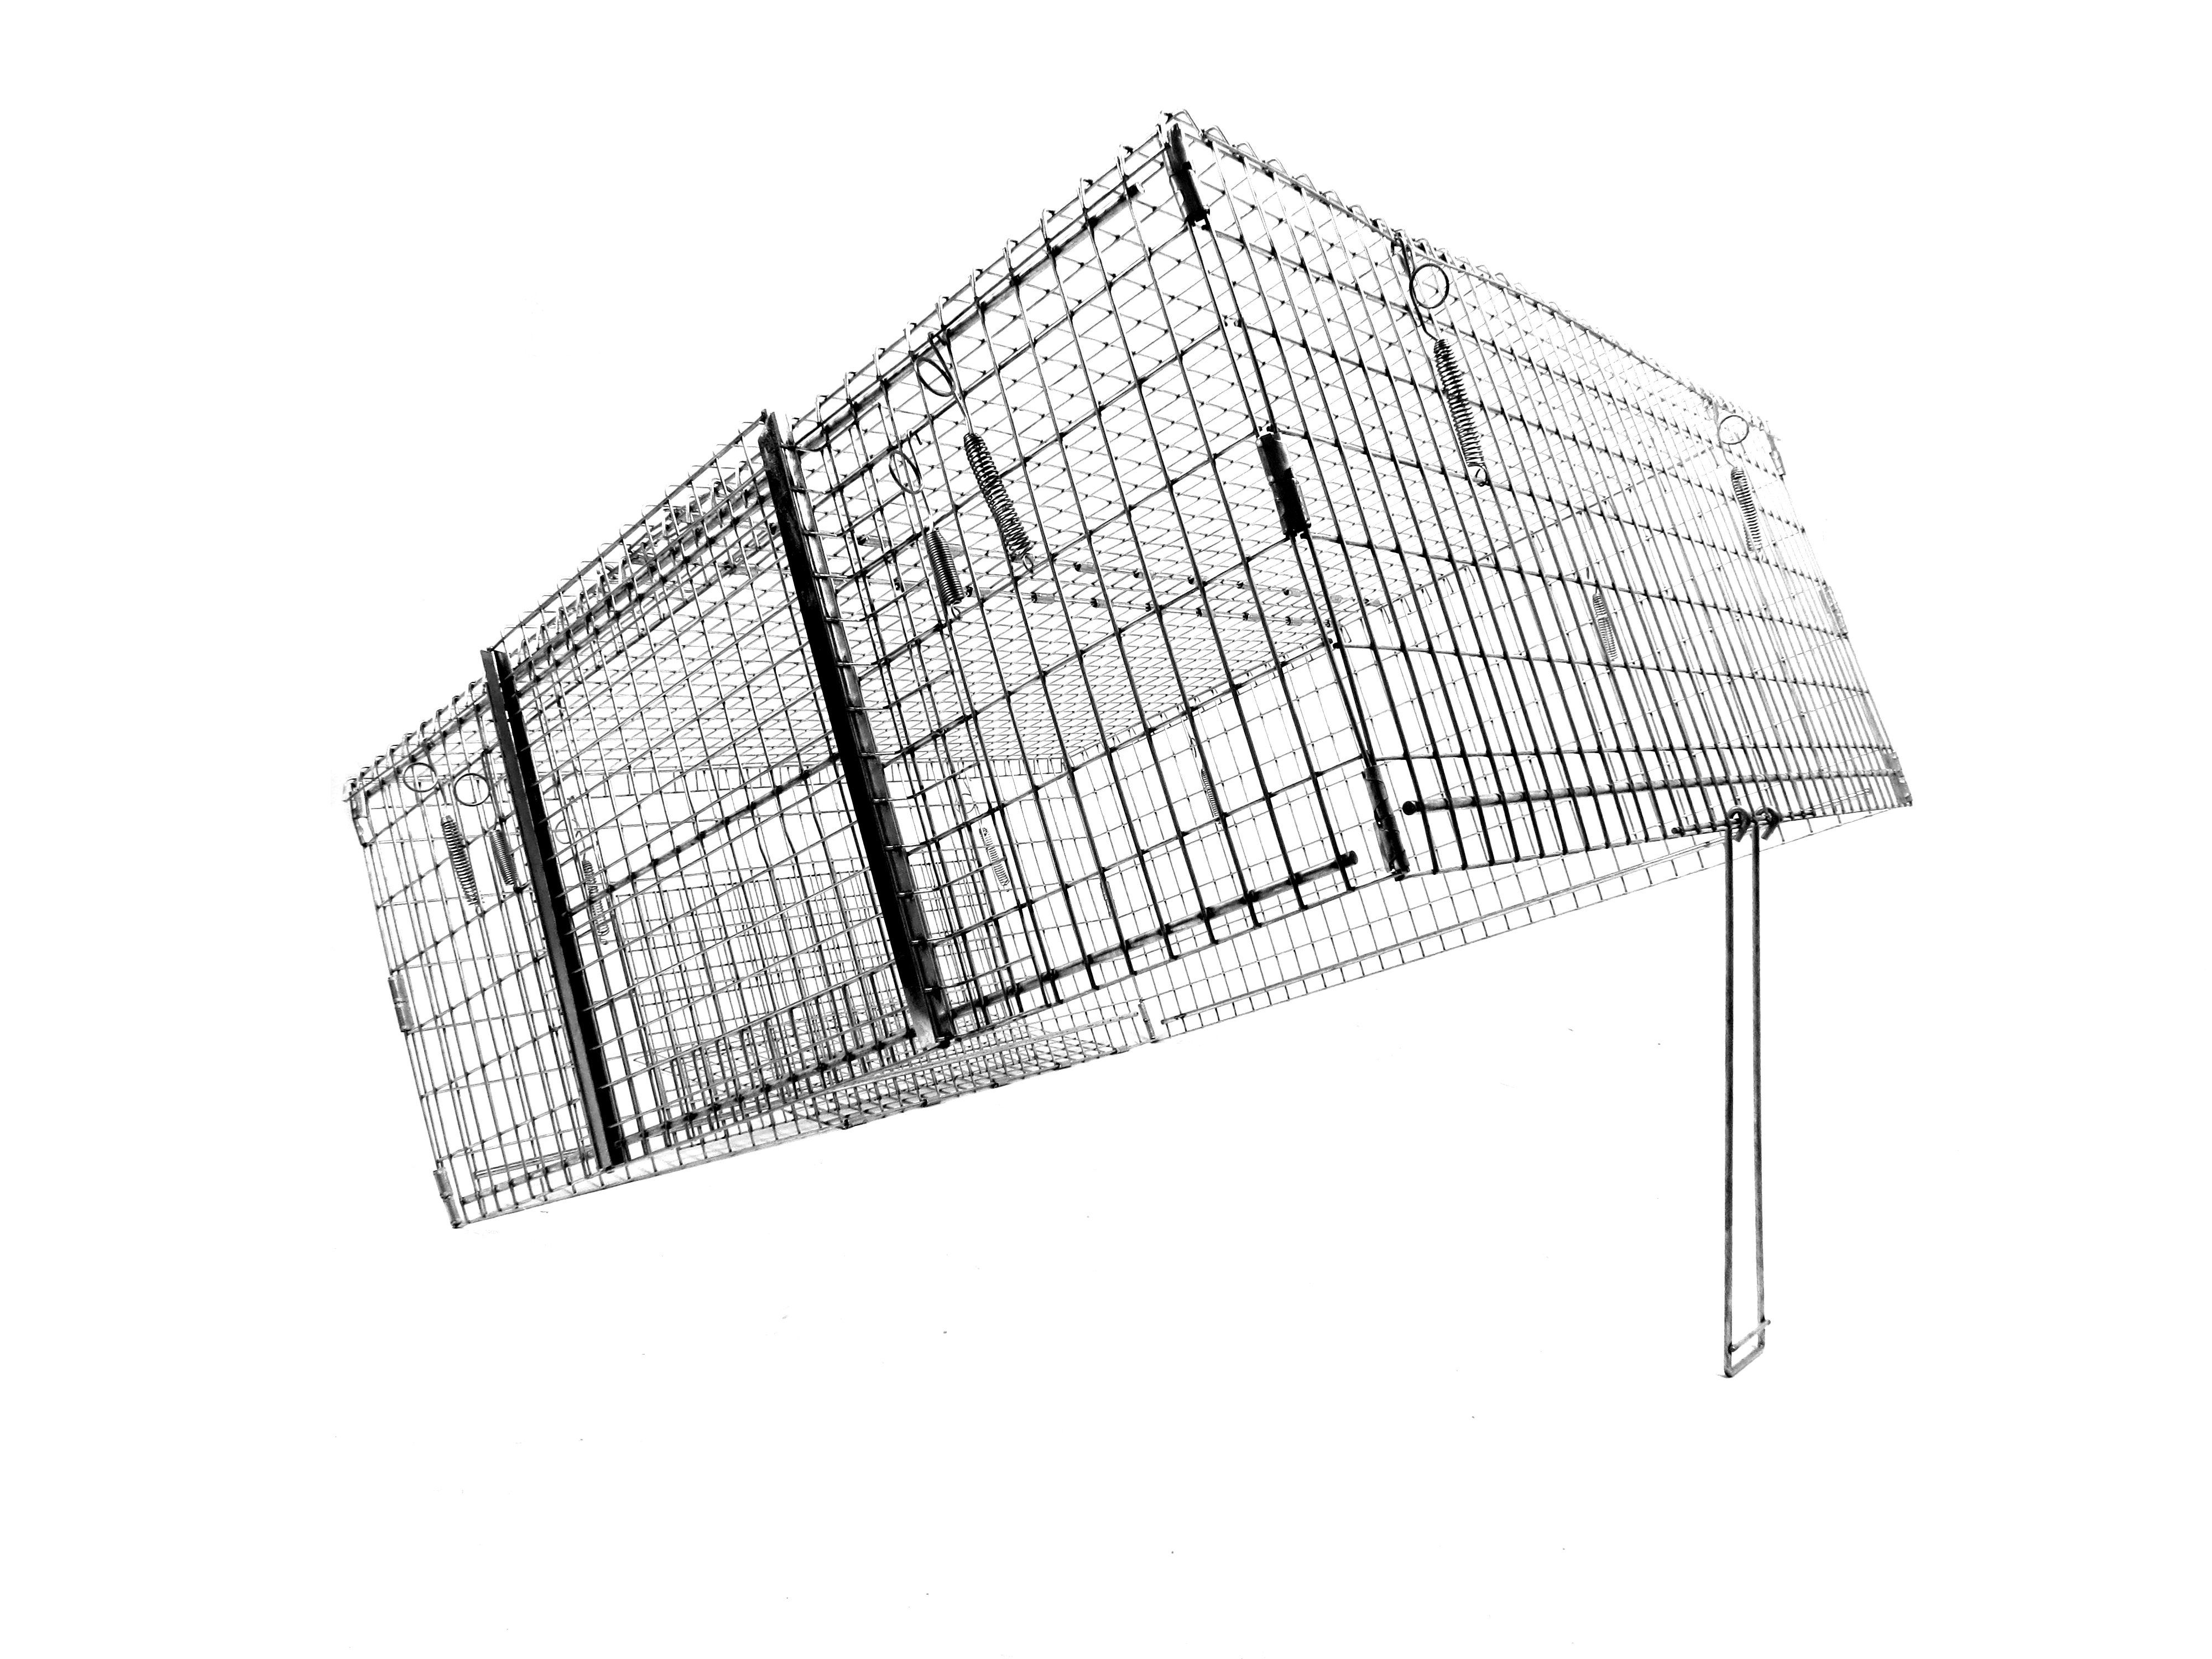 Model DT1 - Neighborhood Cat Drop Trap.  This trap is designed for hard to catch cats that are shy of standard box traps.  Collapses and folds easily for transportation and storage.